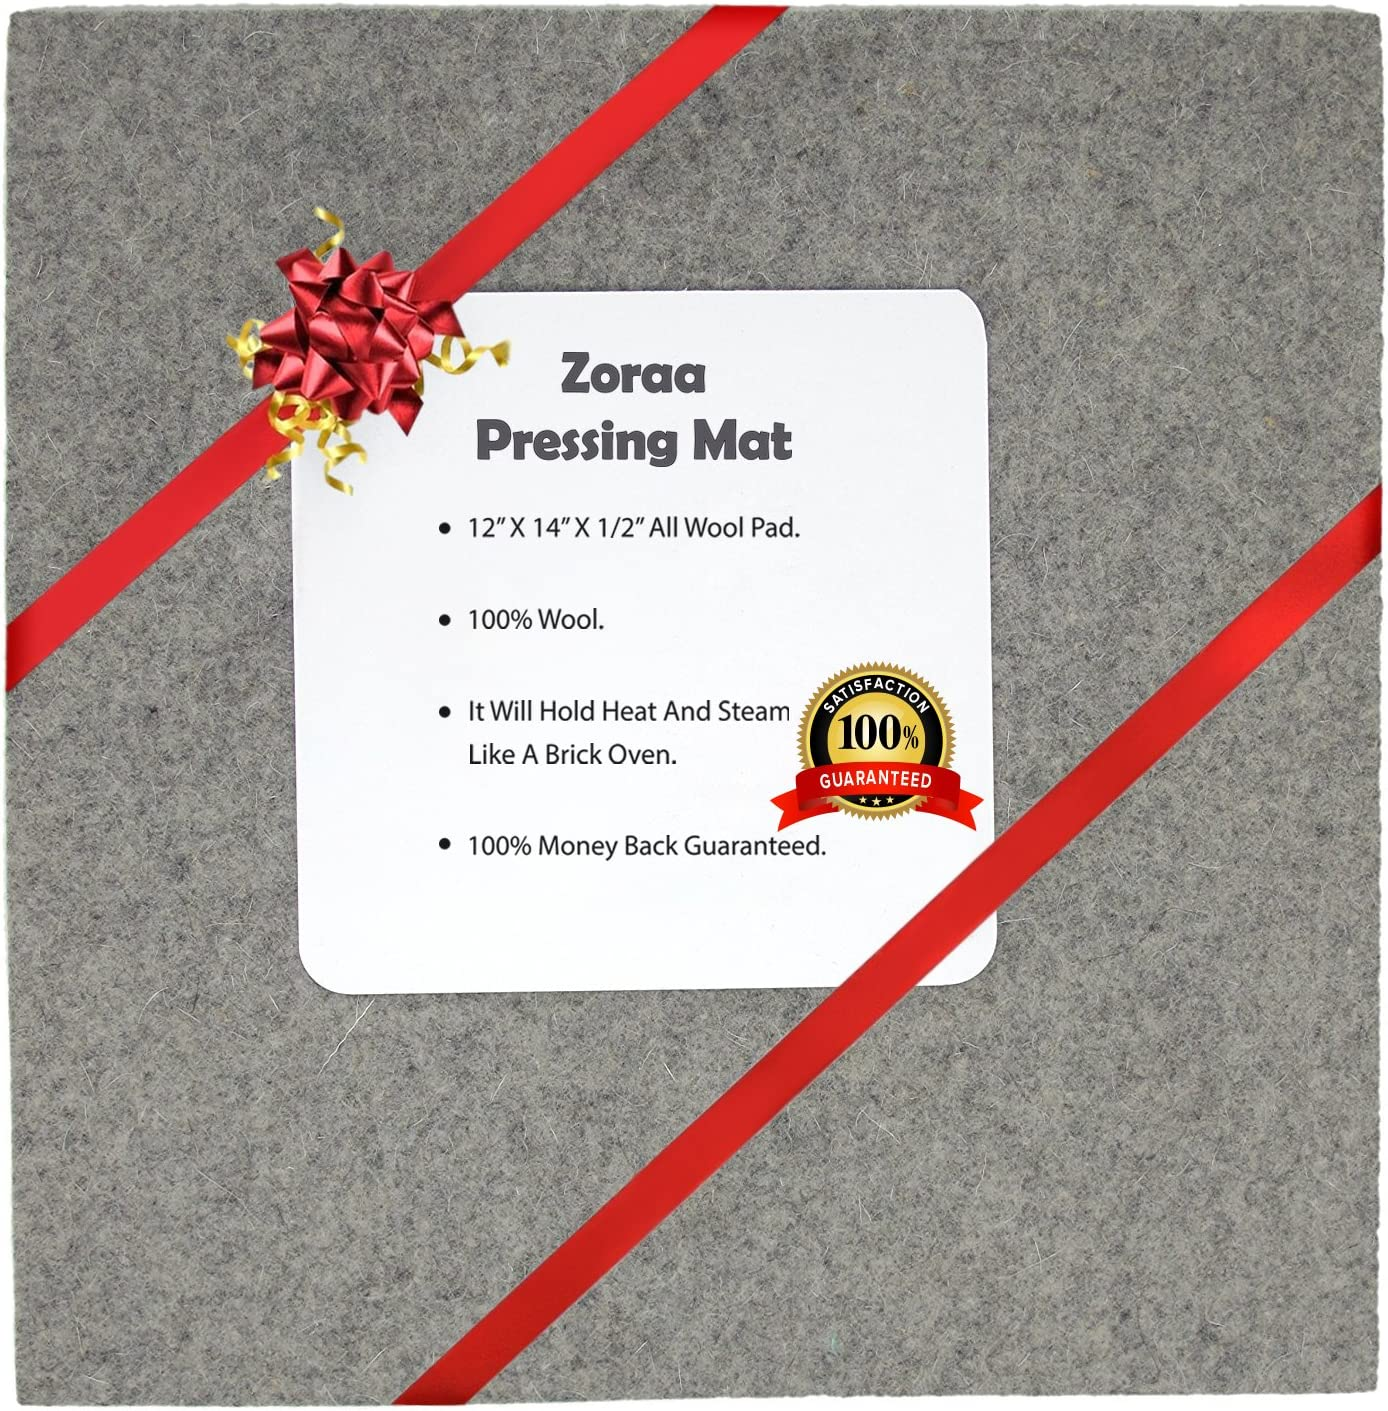 Portable Quilting Heat Press Pad.Portable for Quilting Guilds and Classes! Wool Pressing Mat for Quilting-100/% Wool for Professional Ironing 14 x 14 Wool Ironing Mat